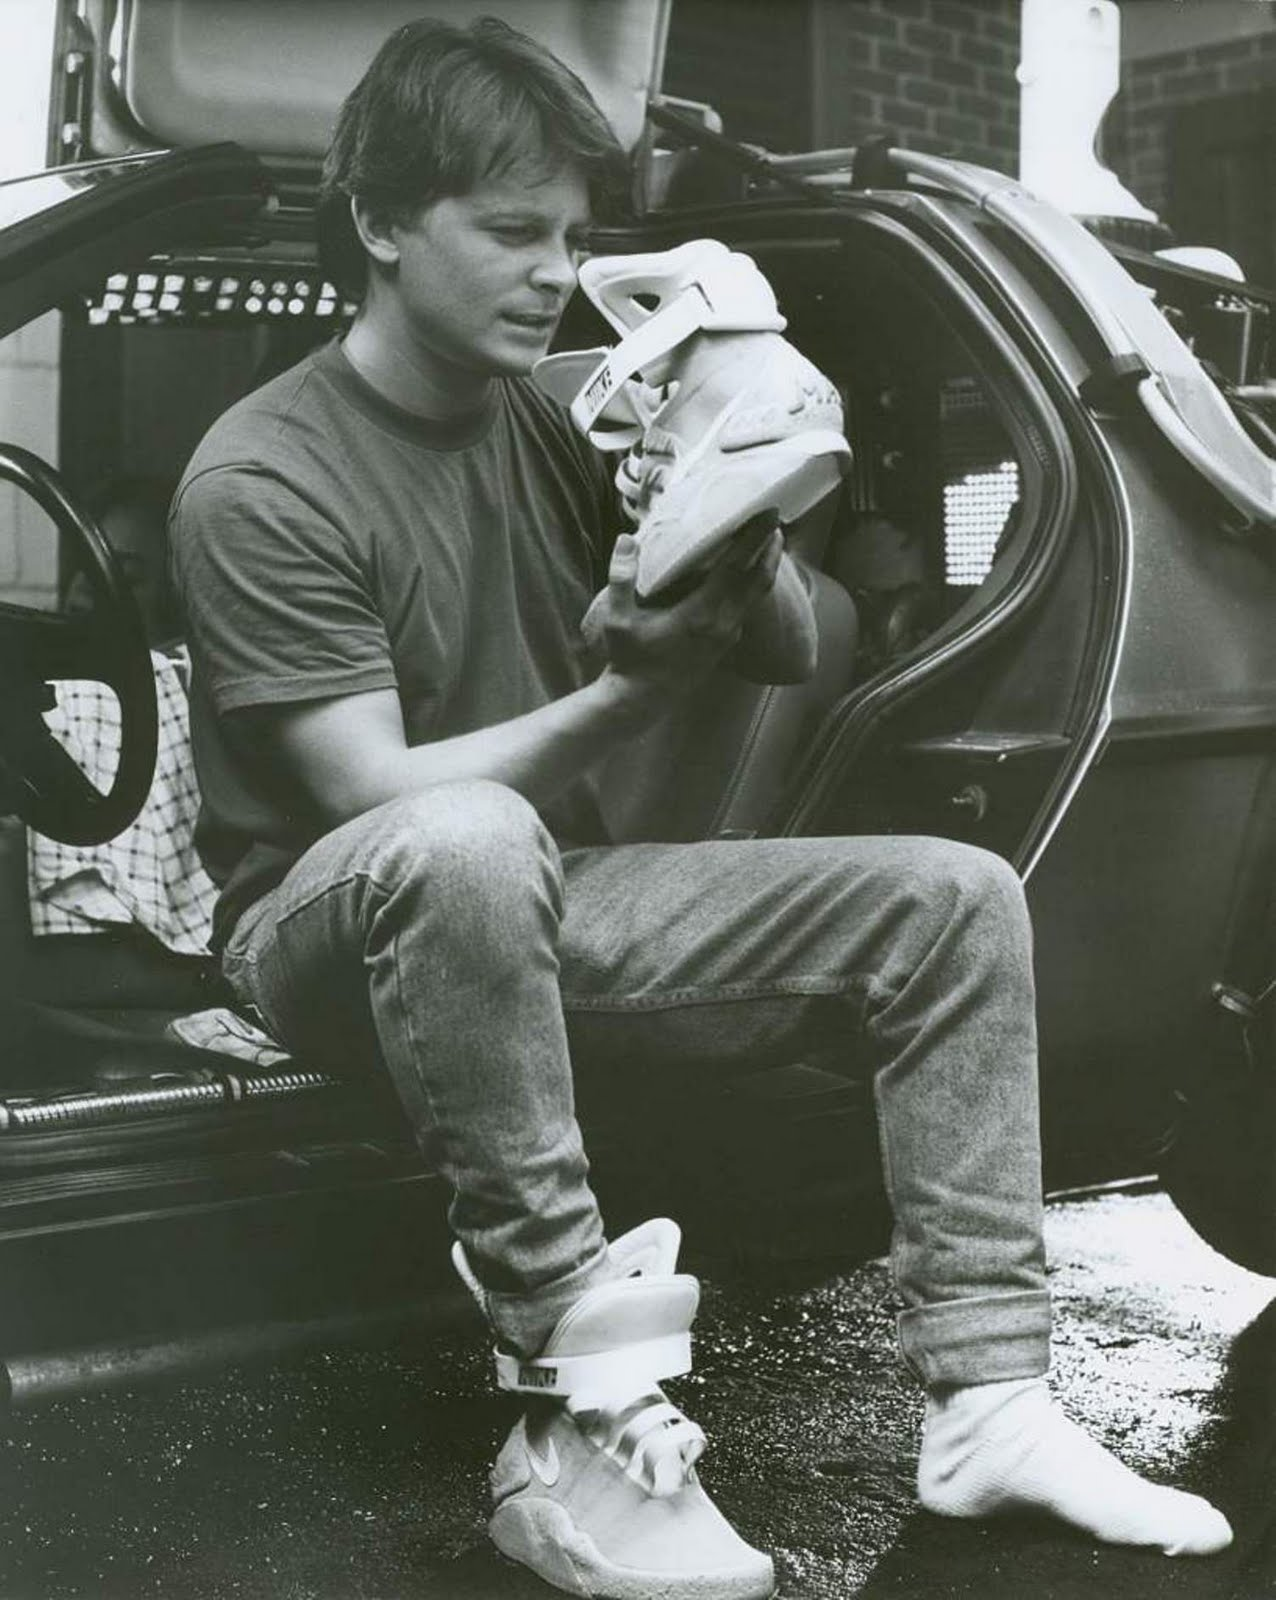 41df2043650 A scene from the movie Back To the Future II featuring Marty McFly (Michael  J. Fox) checking out the